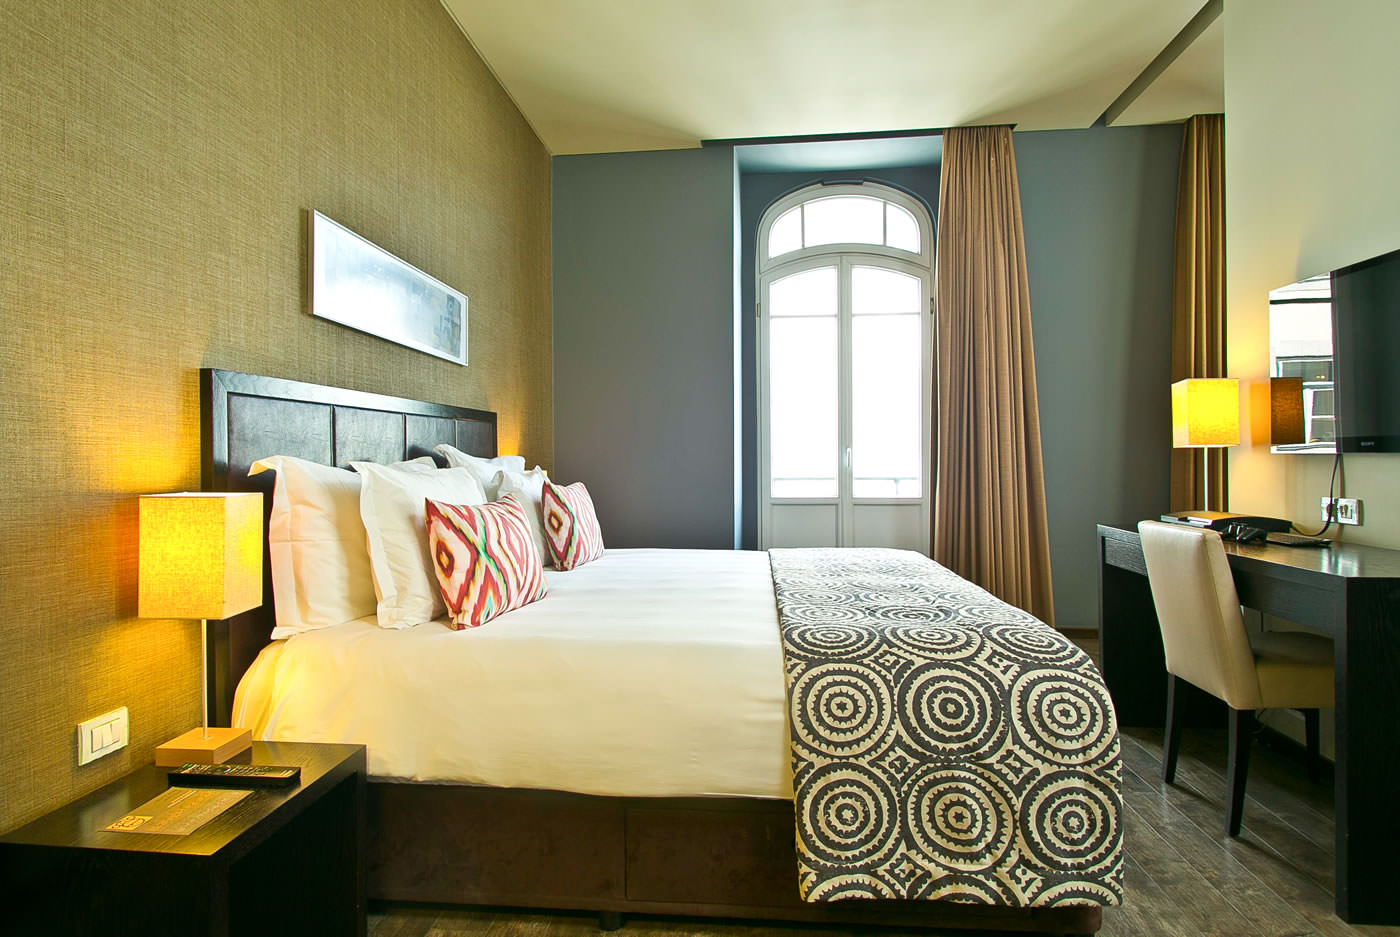 Internacional design hotel boutique hotel in lisbon for Small luxury boutique hotels